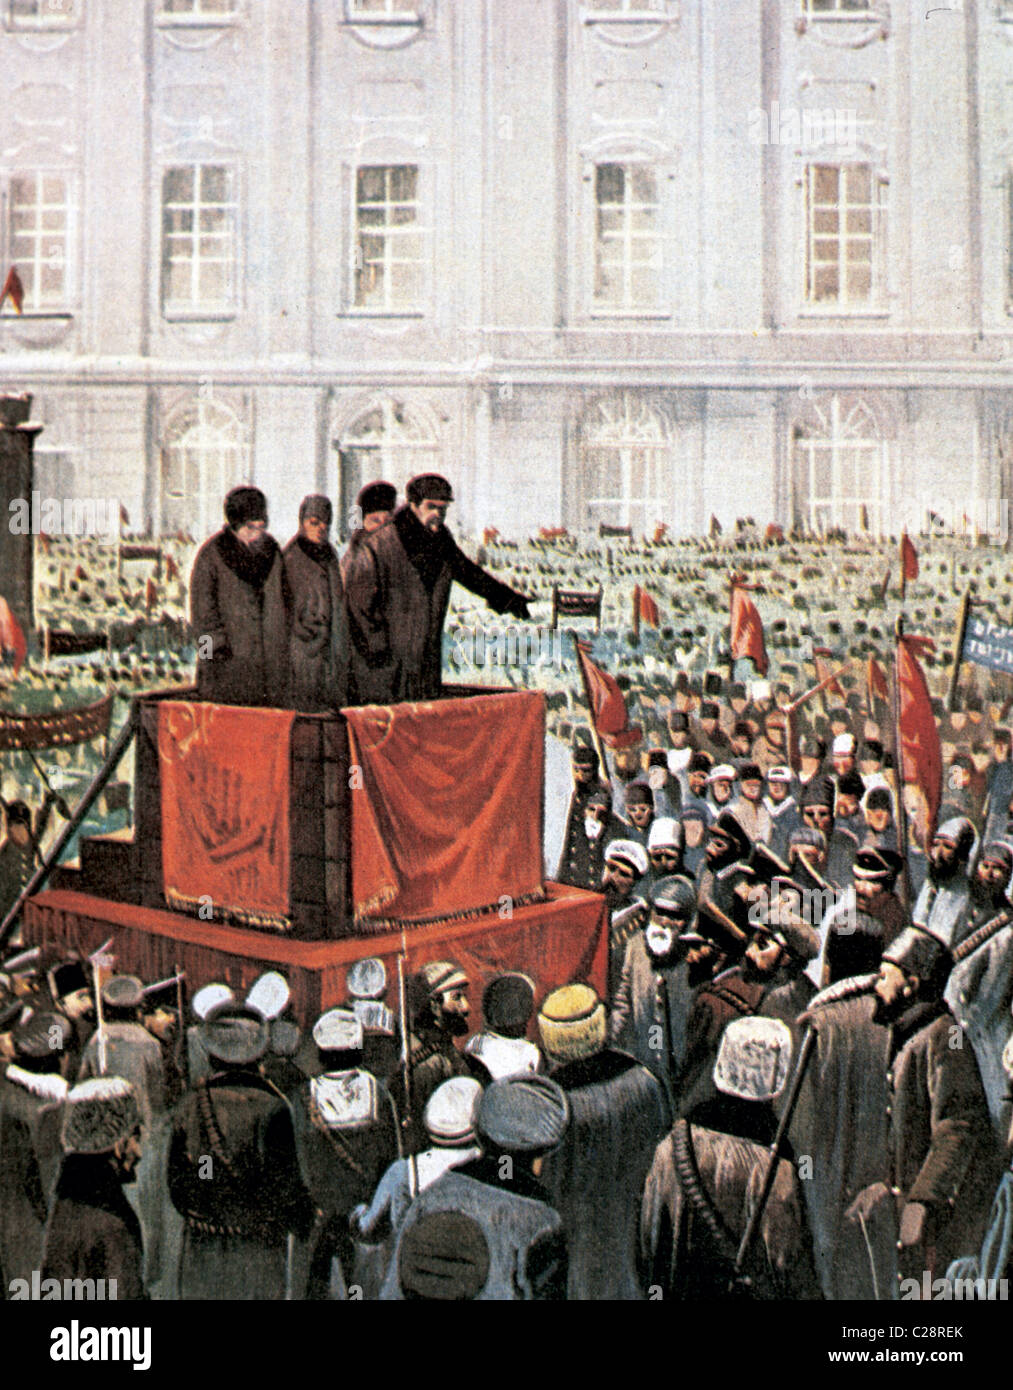 Russian Revolution (1917). Rally by Lenin and Leon Trotsky in St. Petersburg. - Stock Image